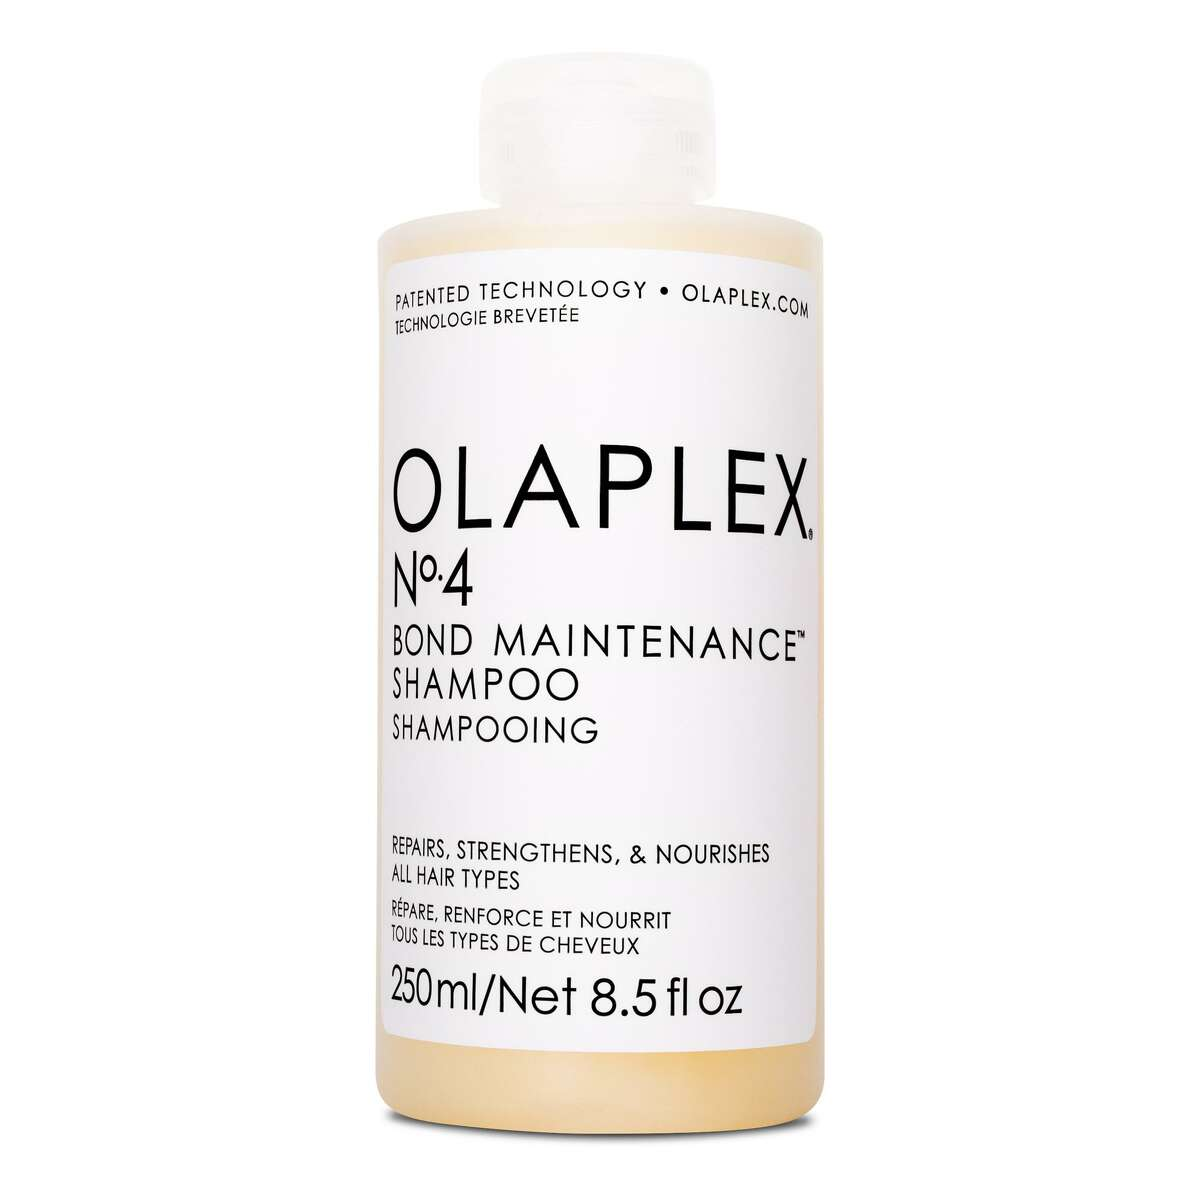 Olaplex No. 5 Hair Care is one of Sephora's best-selling hair-care products.